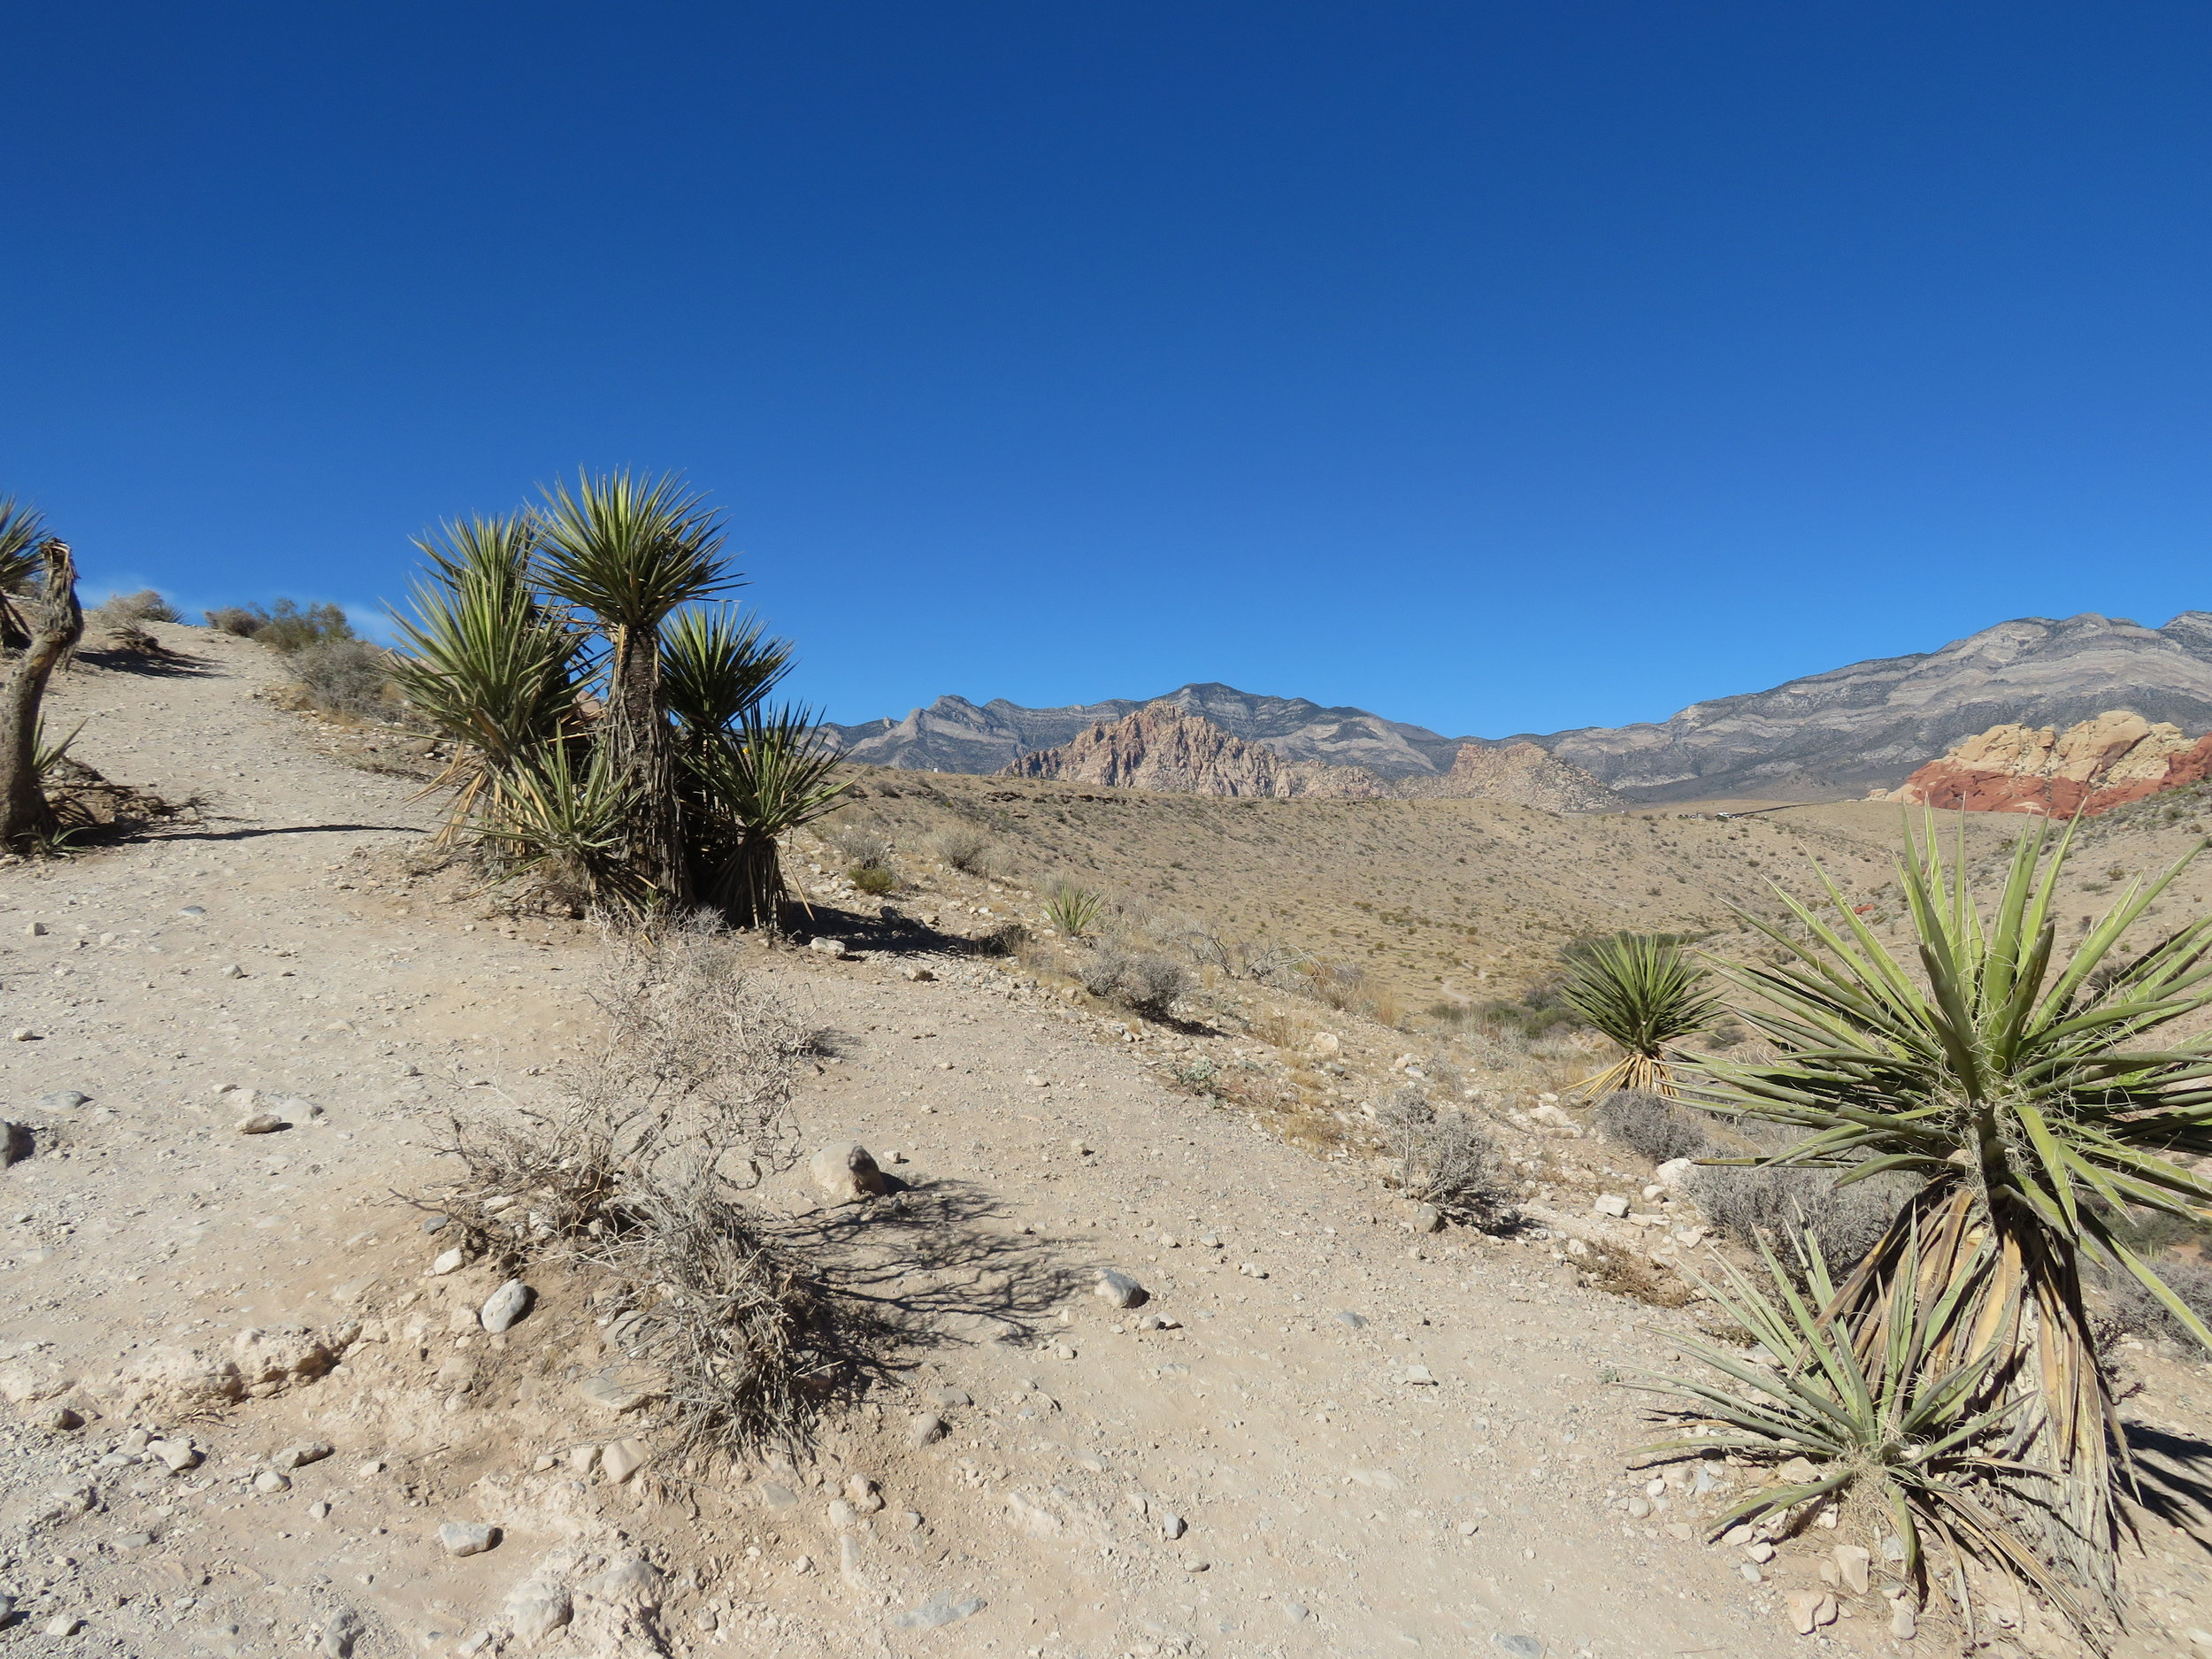 Yucca certainly dominates the views here.